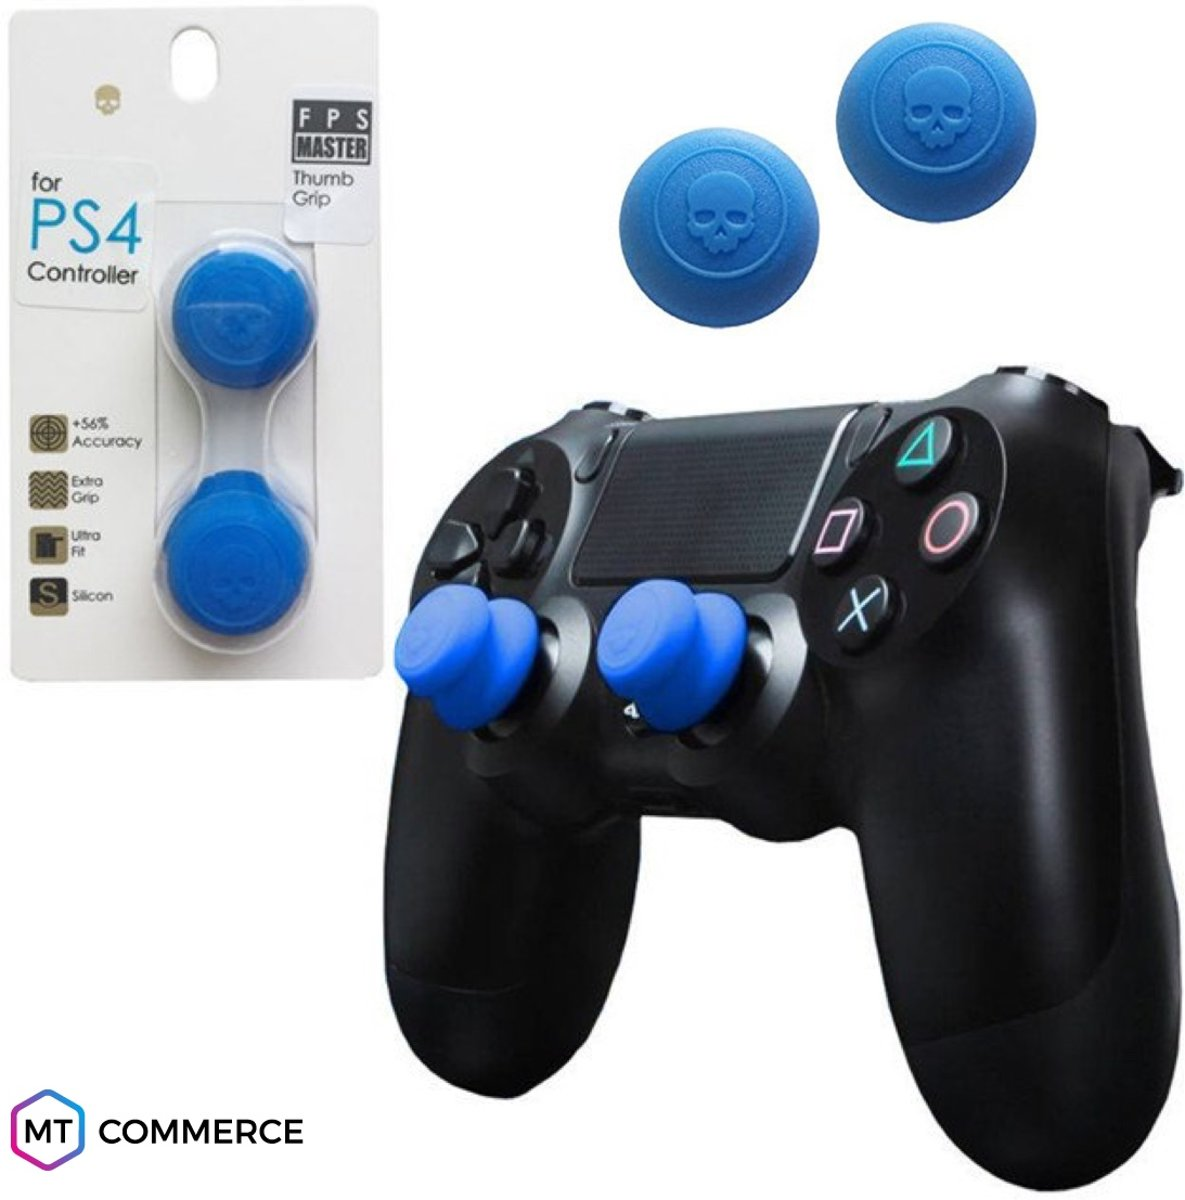 FPS Master thumbsticks voor PS4 - PlayStation Controller Thumb Grips - Blauw